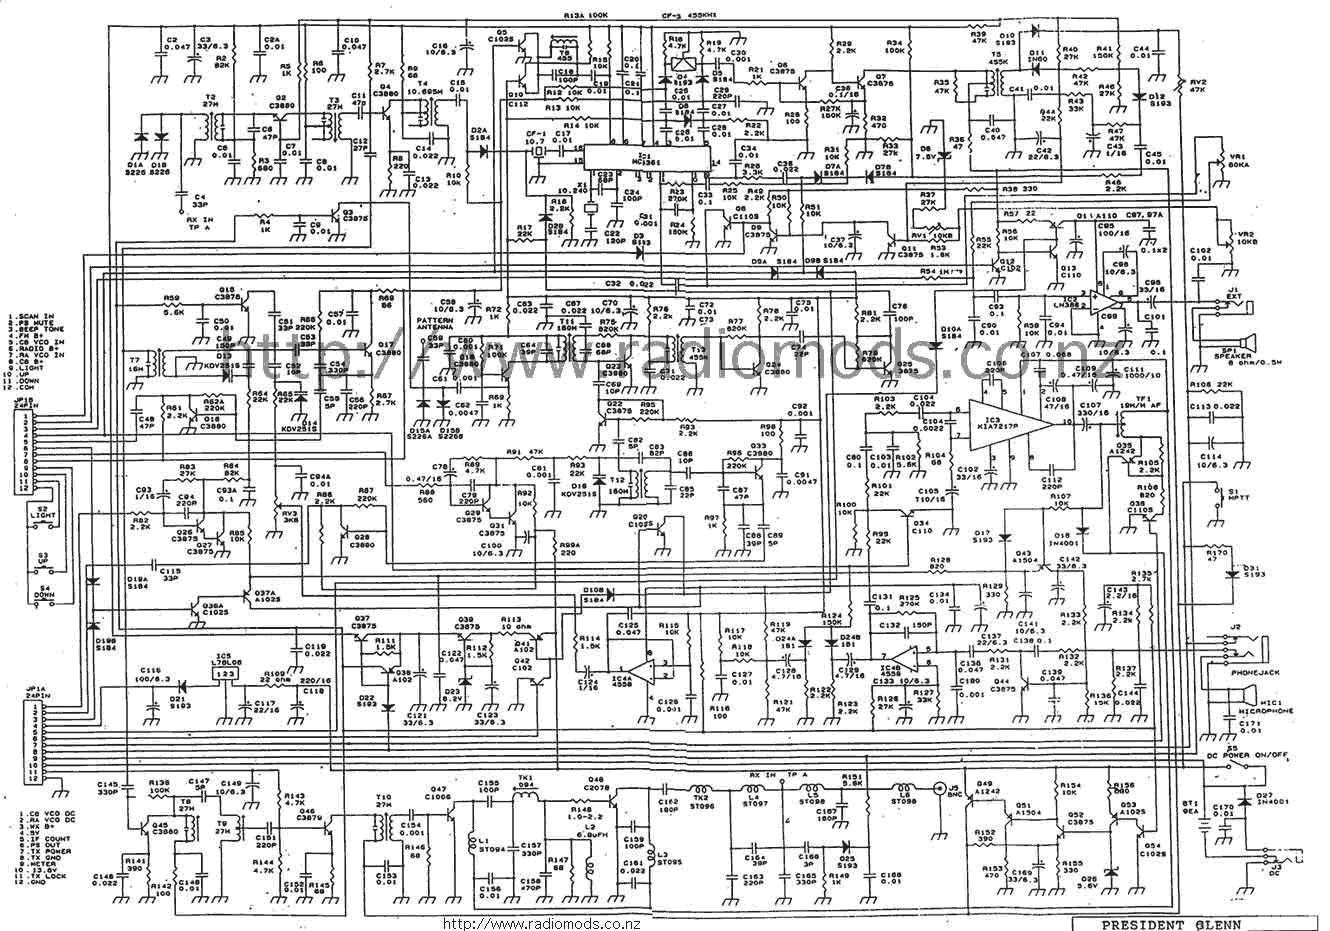 Schematic Diagram President Herbert Cb Radio - All Kind Of Wiring ...